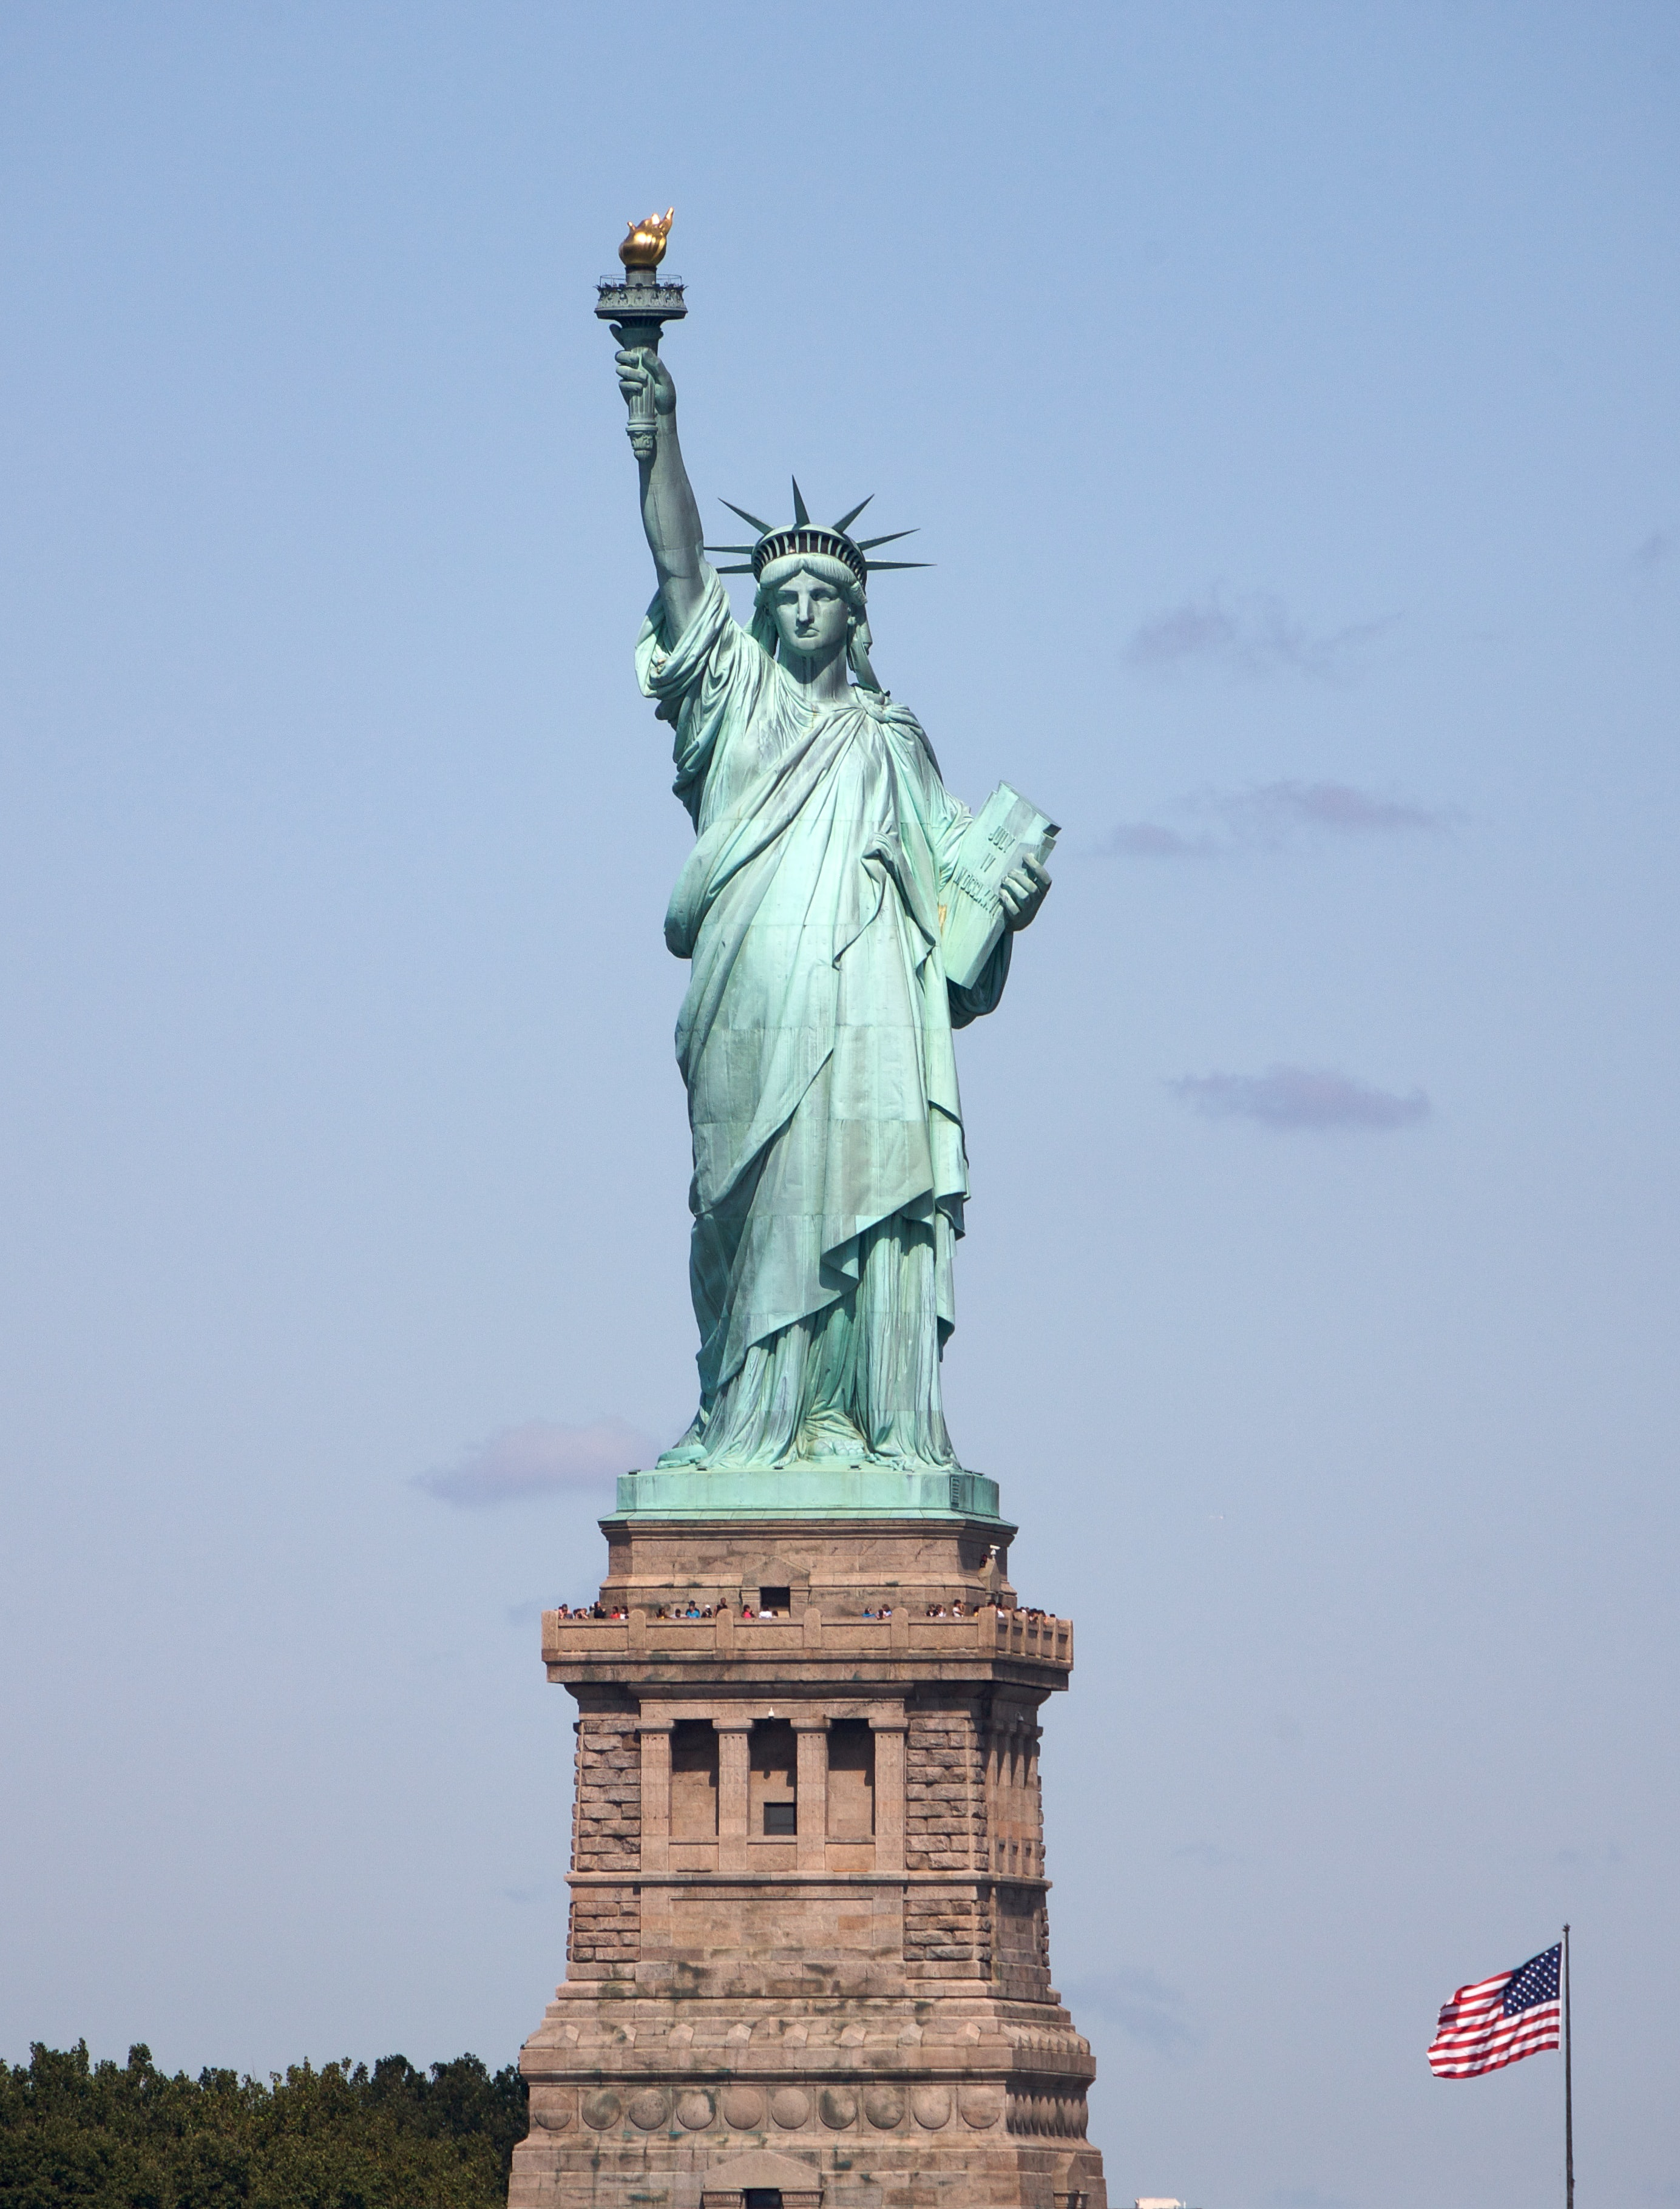 A picture of the Statue of Liberty.